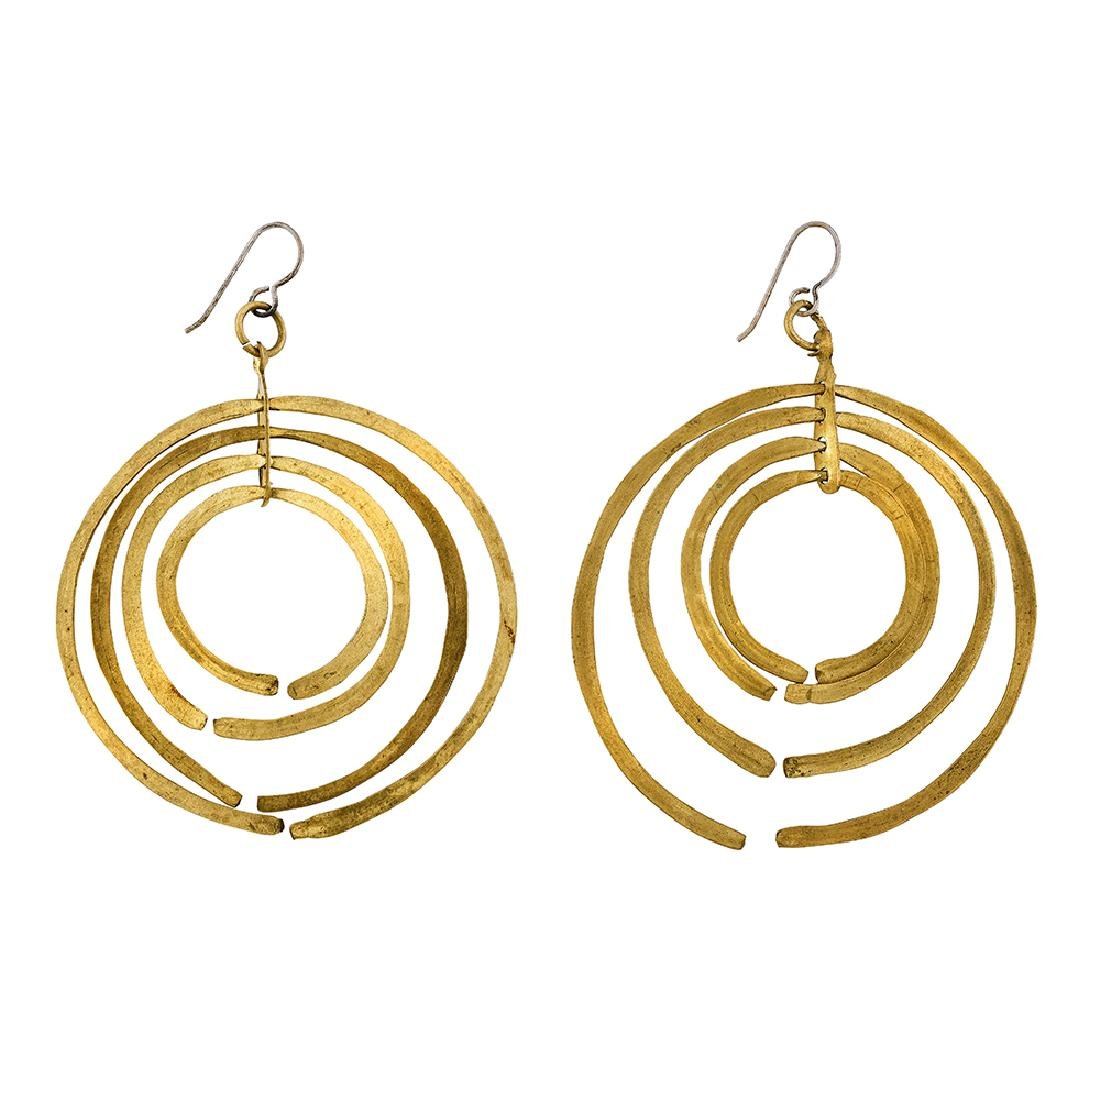 Style of Harry Bertoia concentric earrings